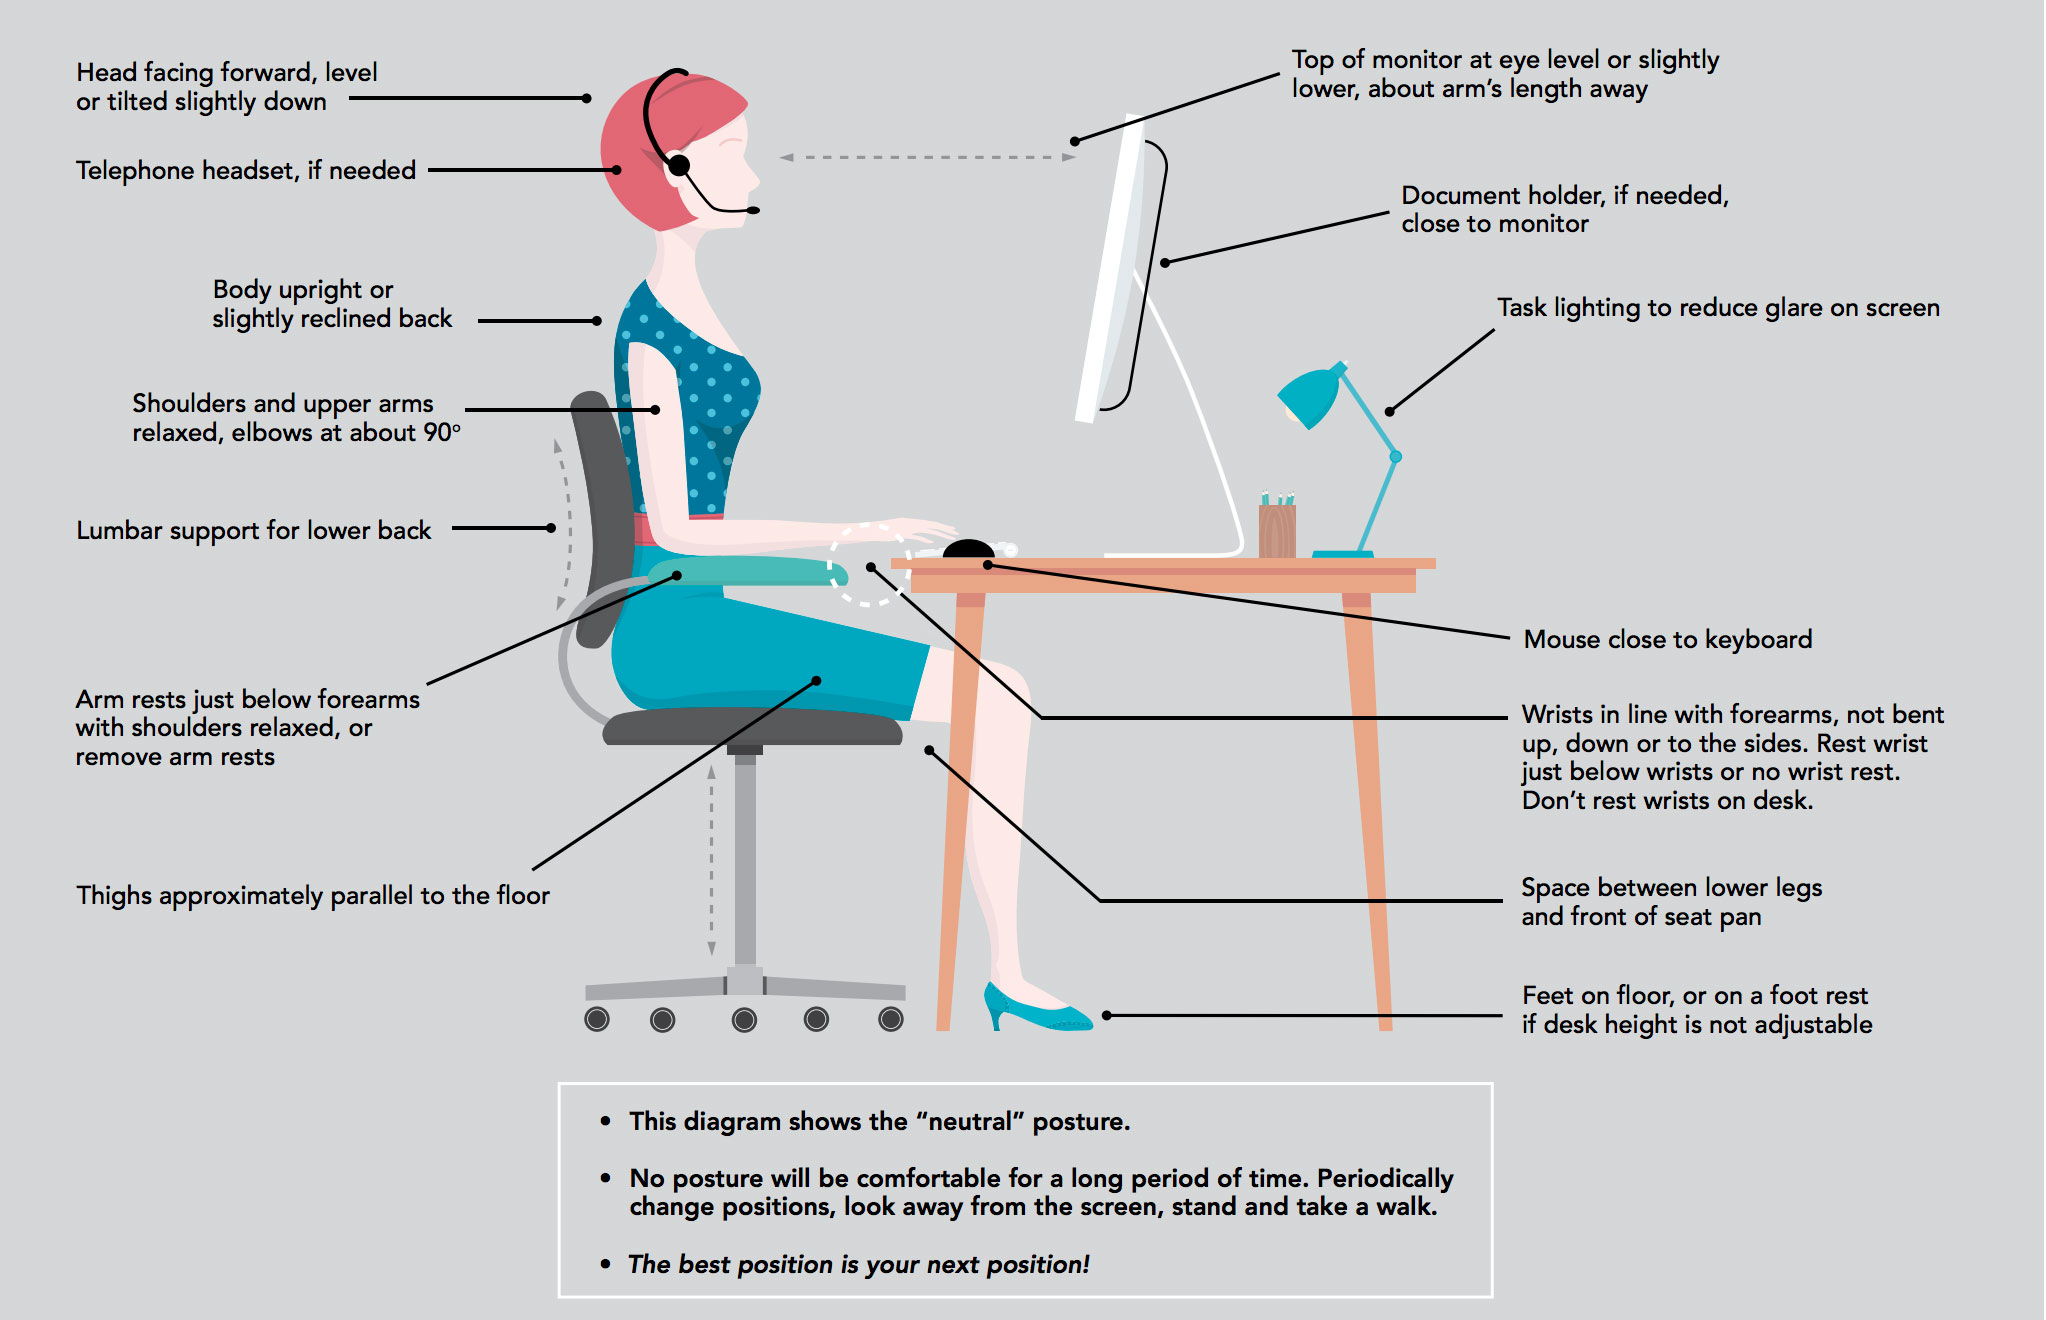 Illustration with workstation ergonomics guidelines